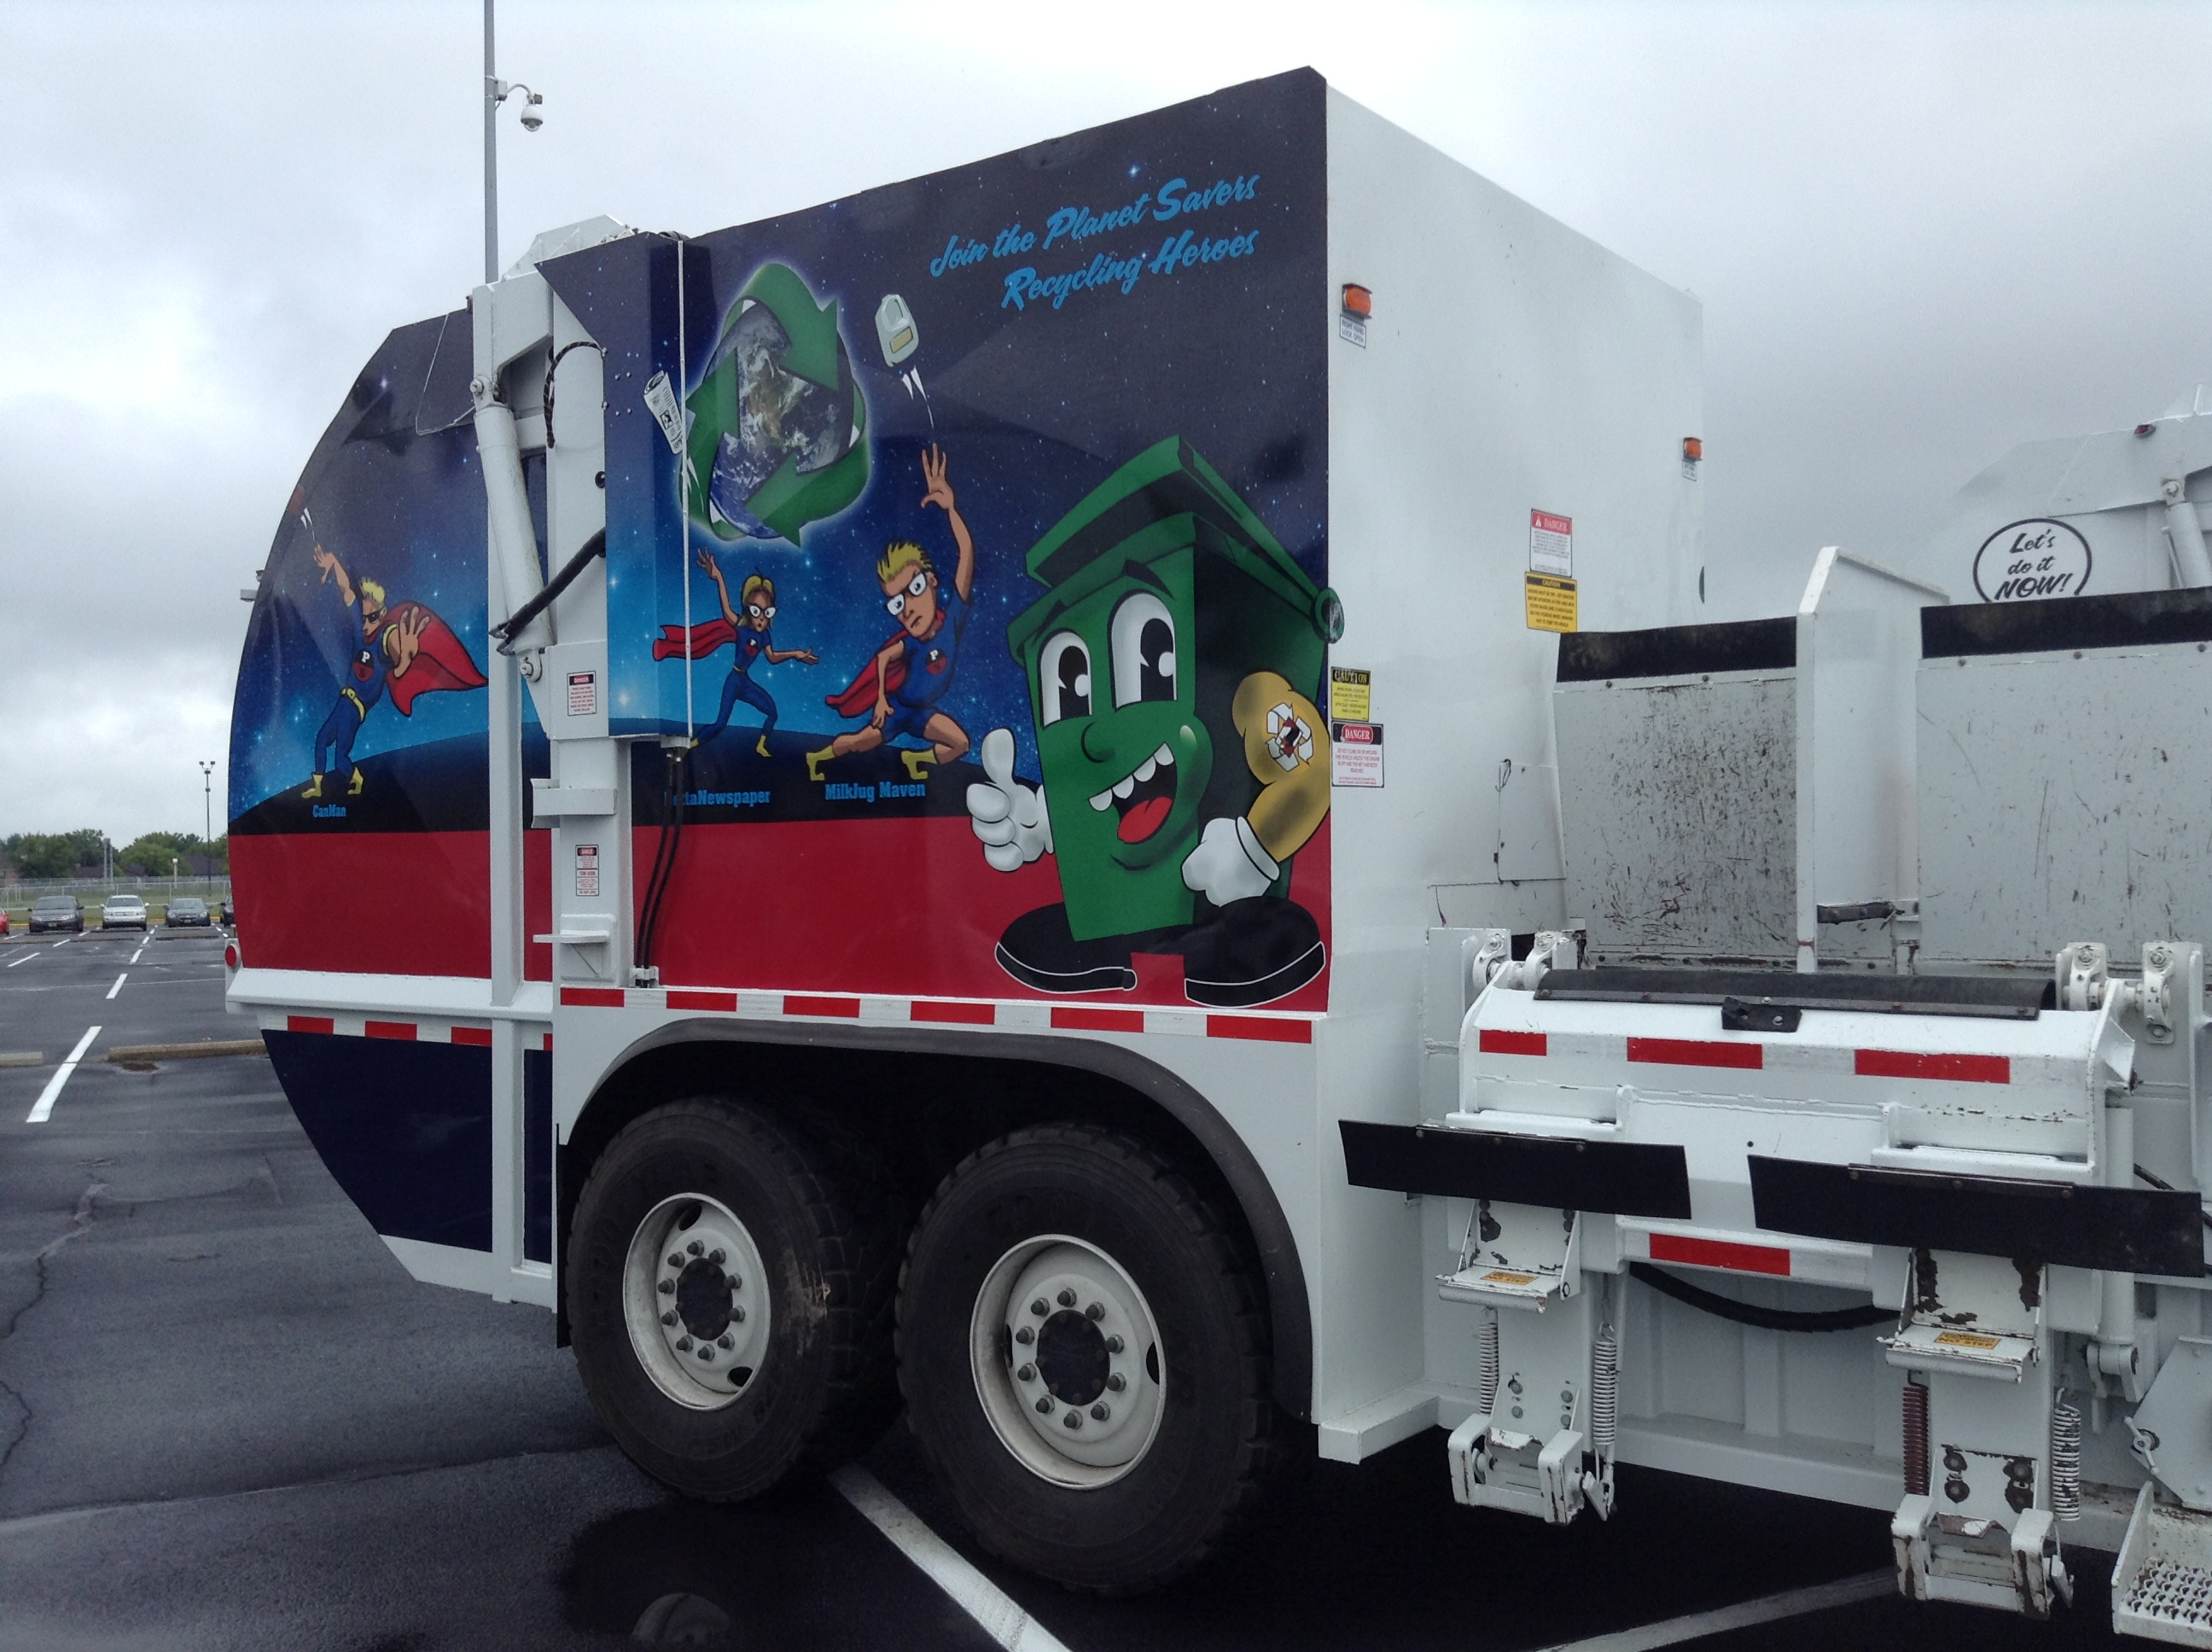 A trash truck with a cartoon dumpster on the side